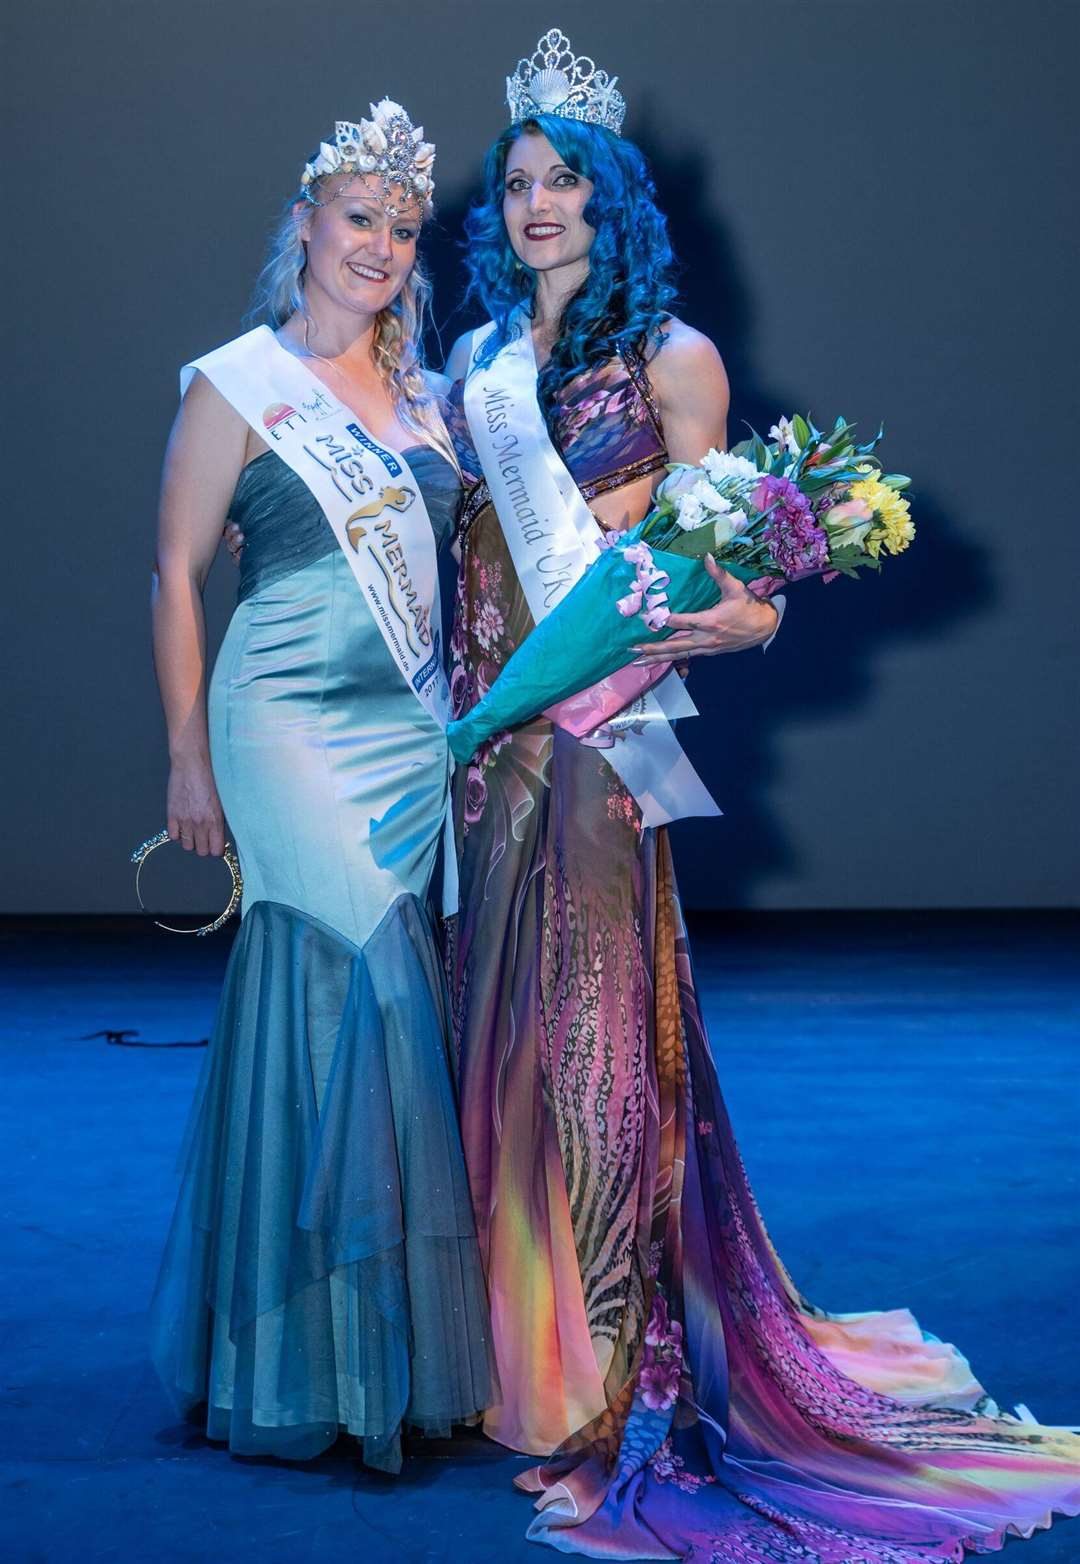 Laura Hudson (right) with reigning Miss Mermaid UK and International winner Laura Siddall. Photo by Paul Dale.